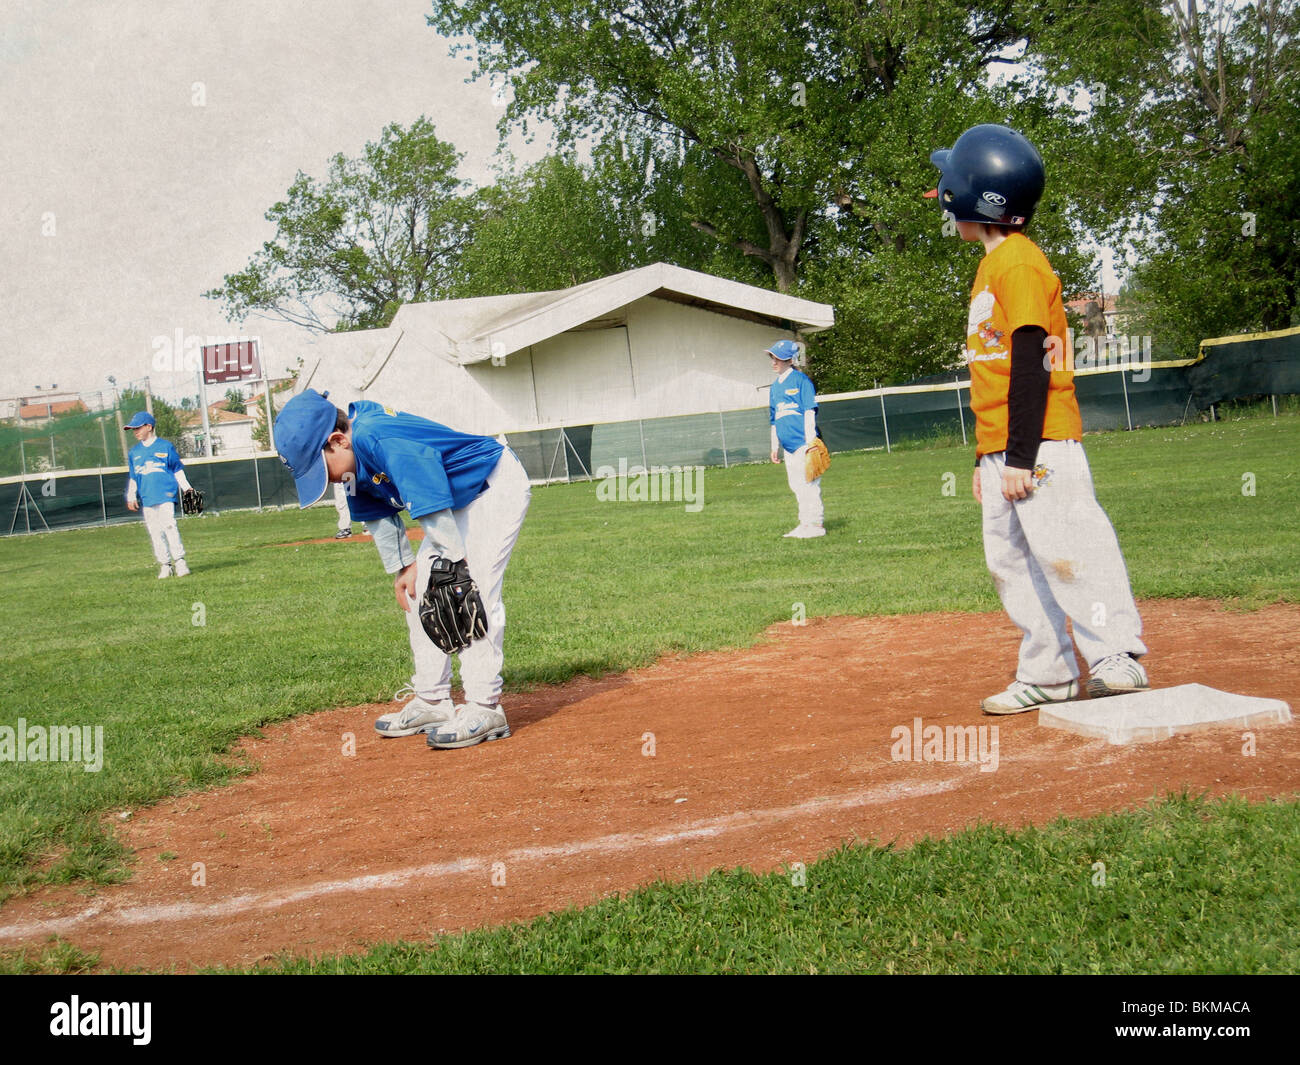 Boy playing baseball Photo Stock